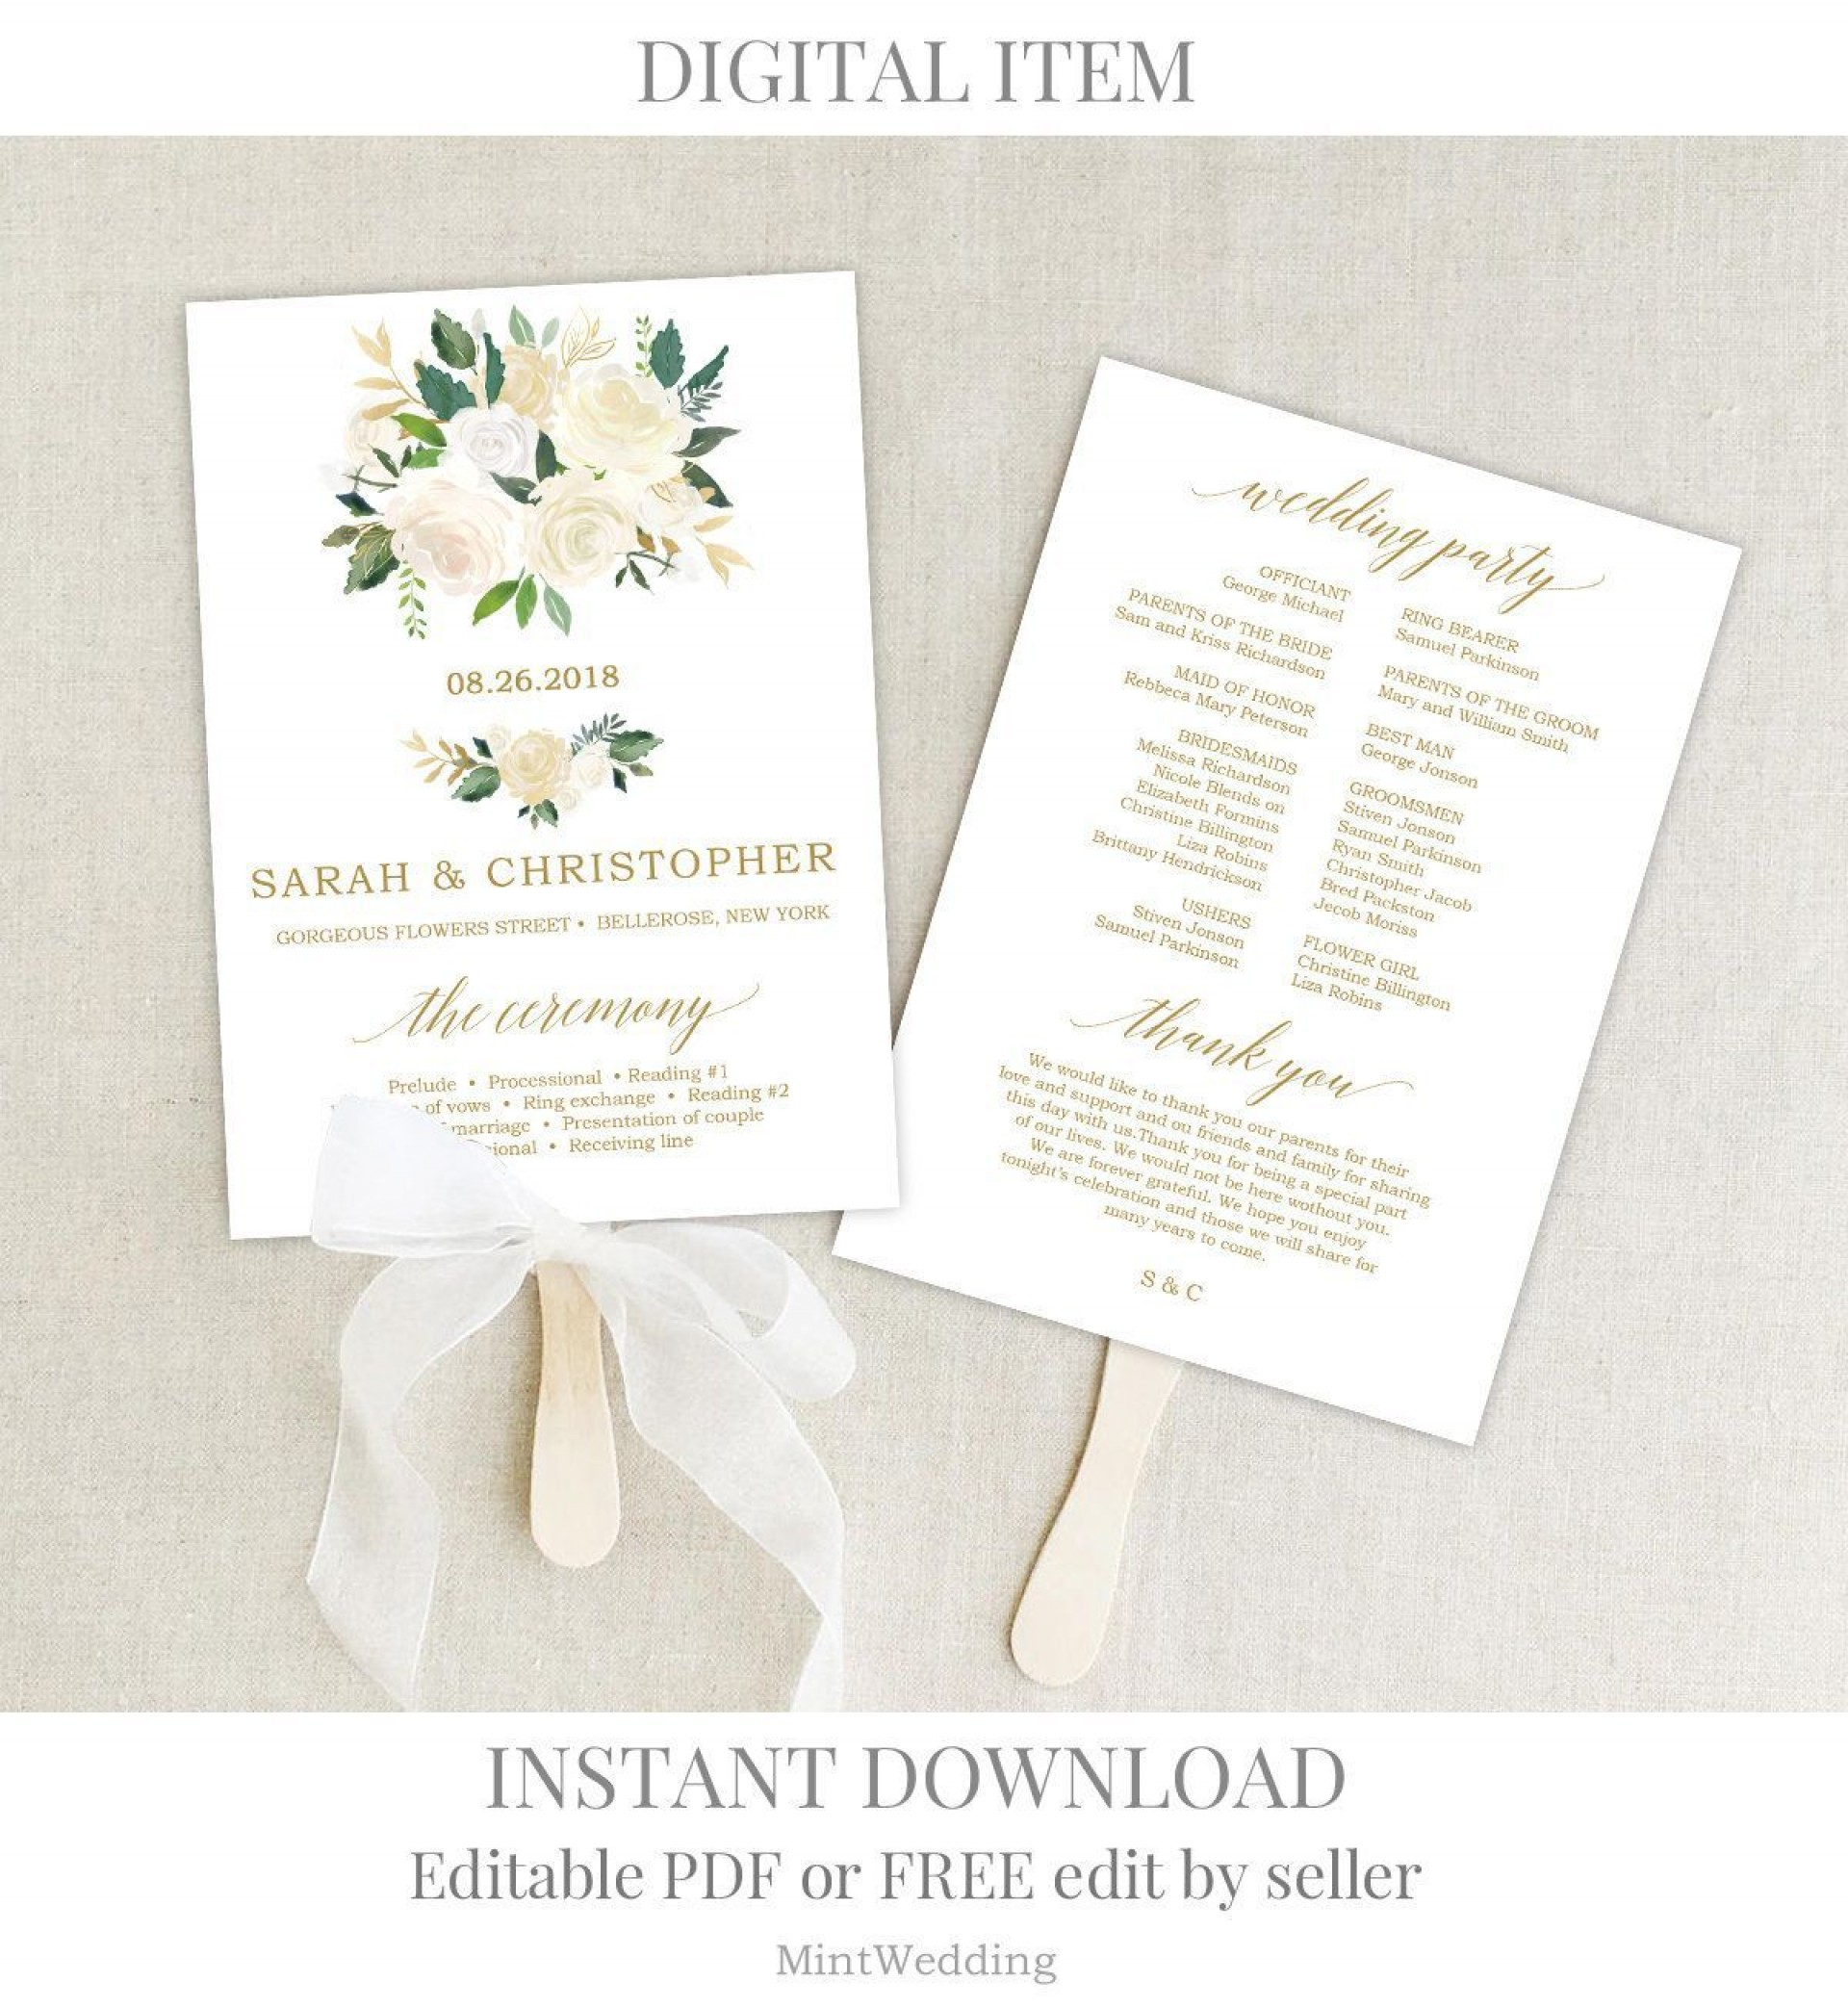 002 Fascinating Free Wedding Program Template For Word Highest Clarity  Download Fan Microsoft Downloadable Reception1920